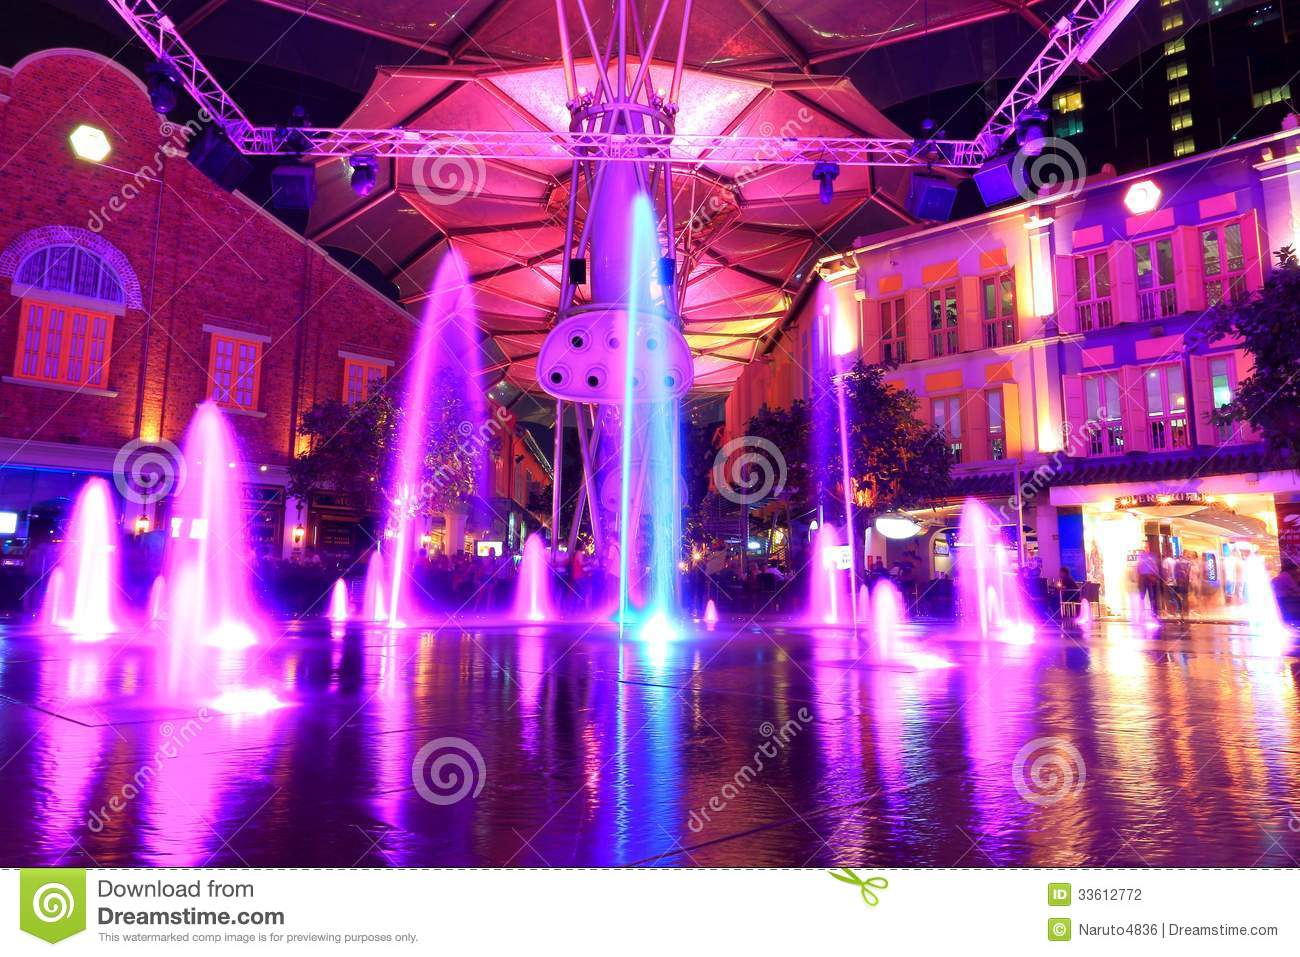 beautiful-lighting-clarke-quay-night-lif